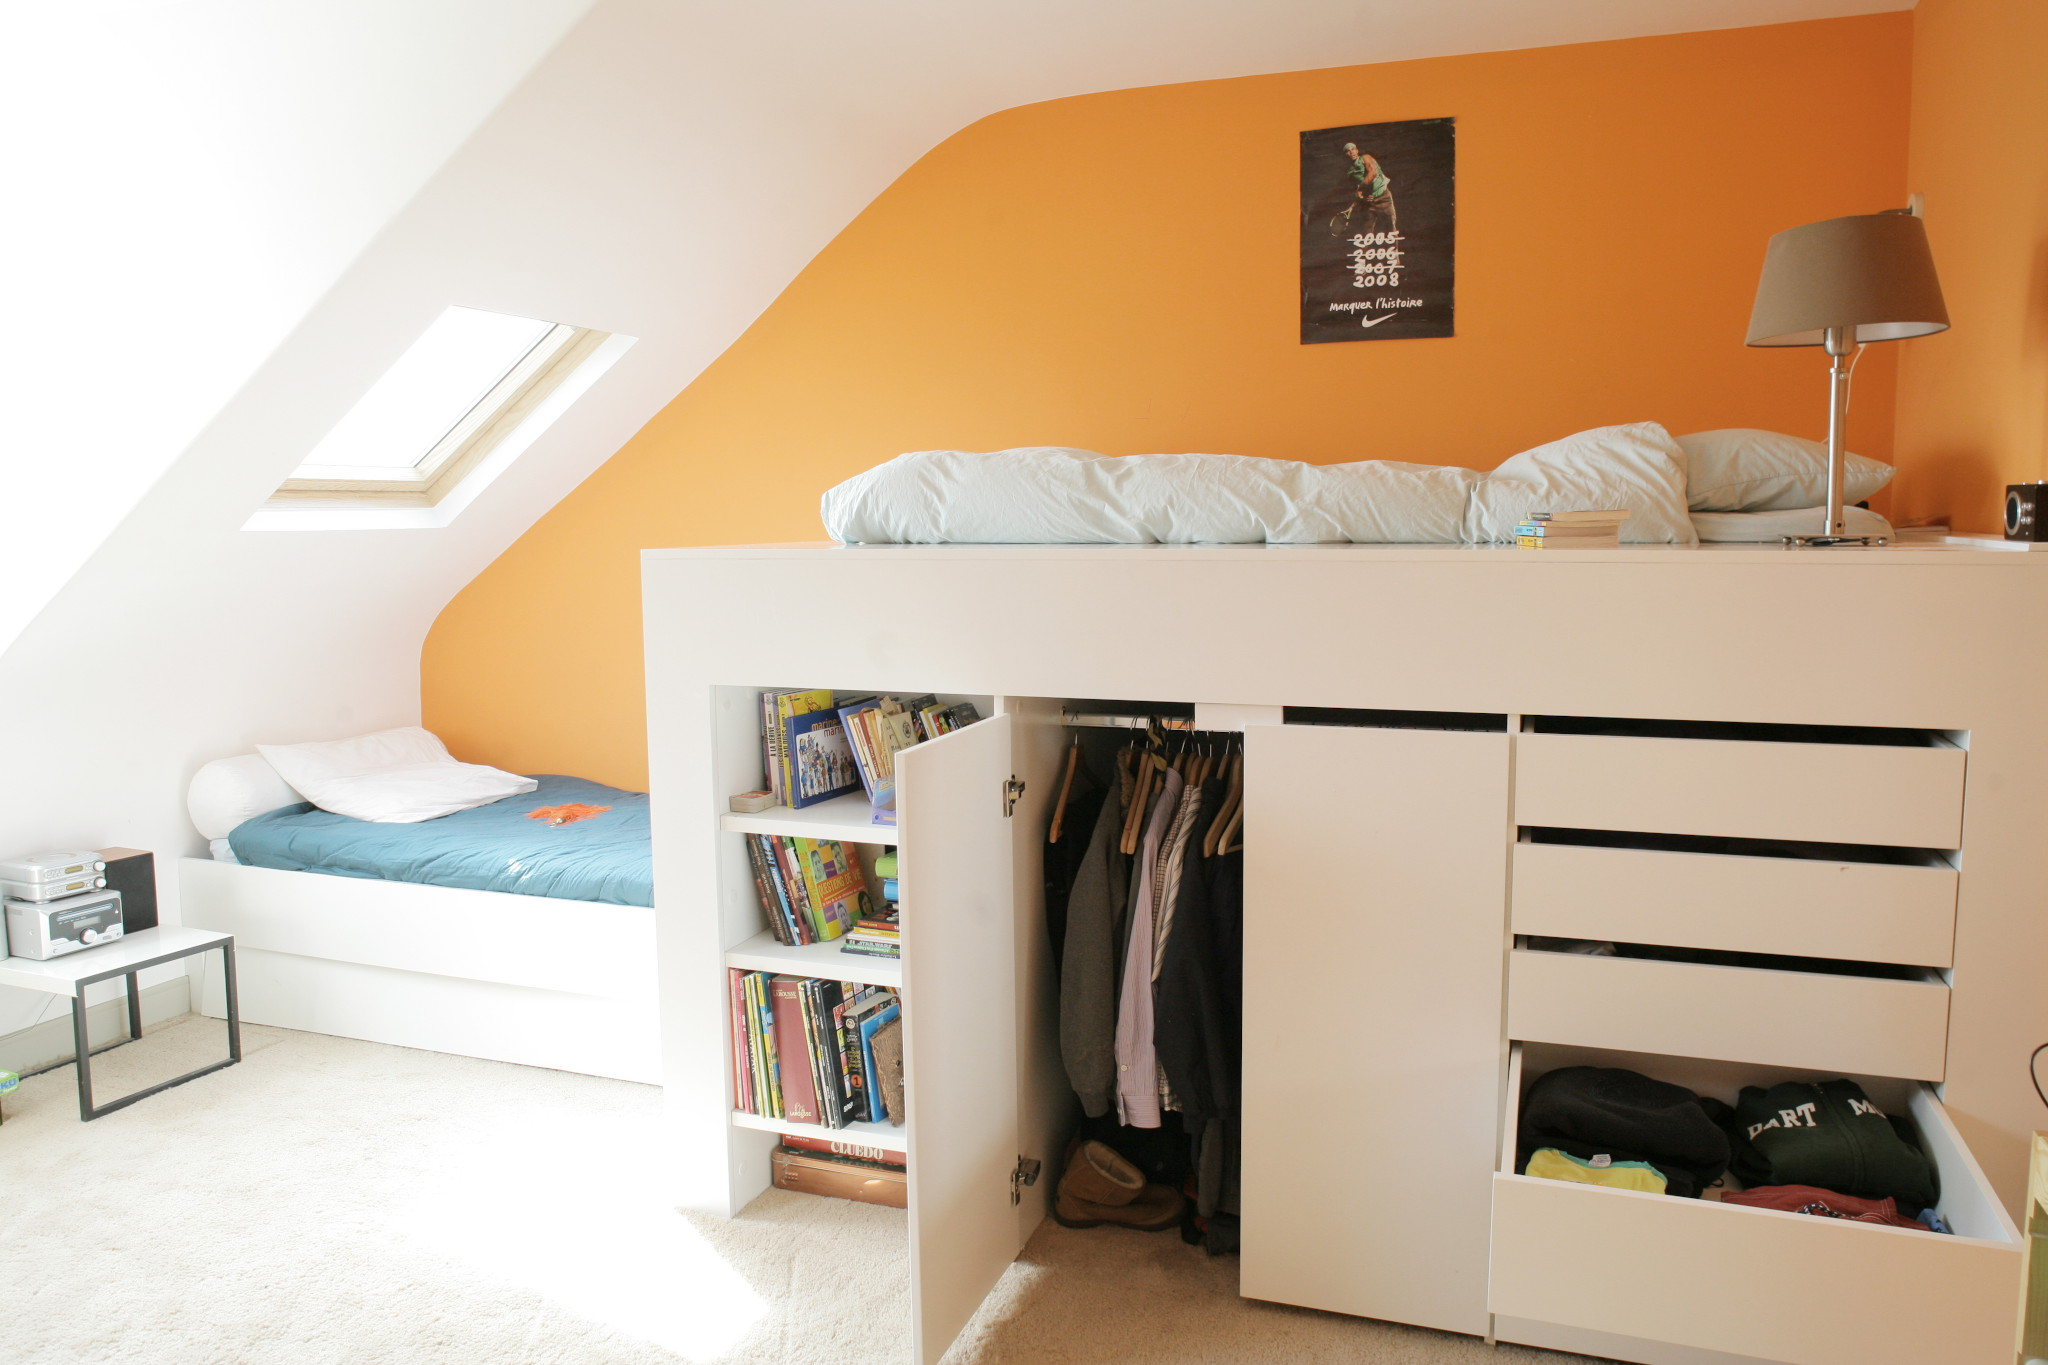 Nonjetable-Mezzanine-Bed-With-Built-in-Wardrobe-02